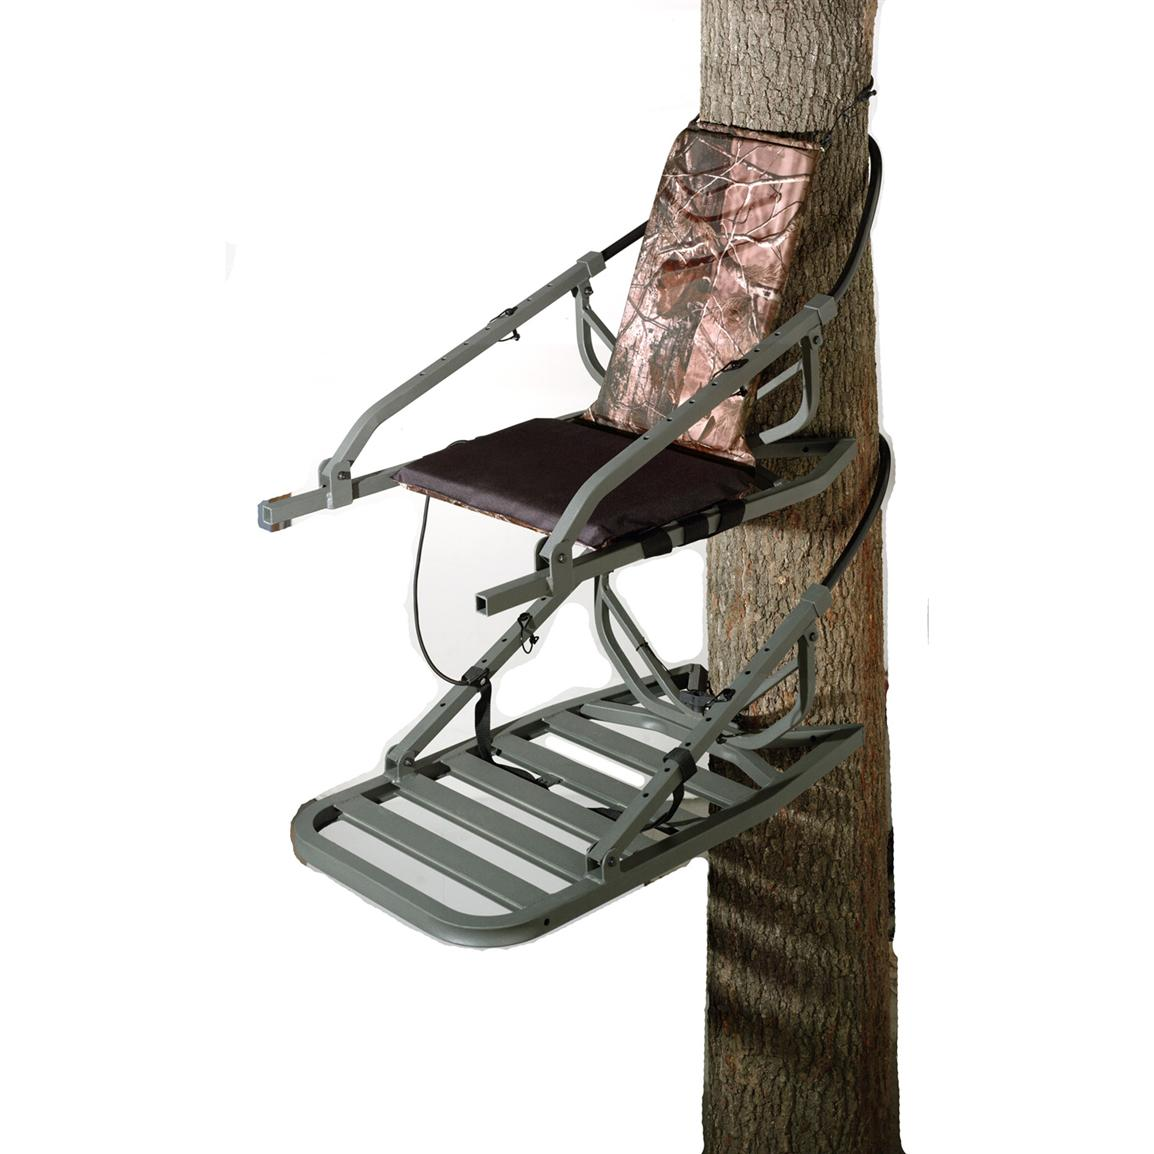 Strongbuilt 174 Deluxe Climber Stand 151273 Climbing Tree